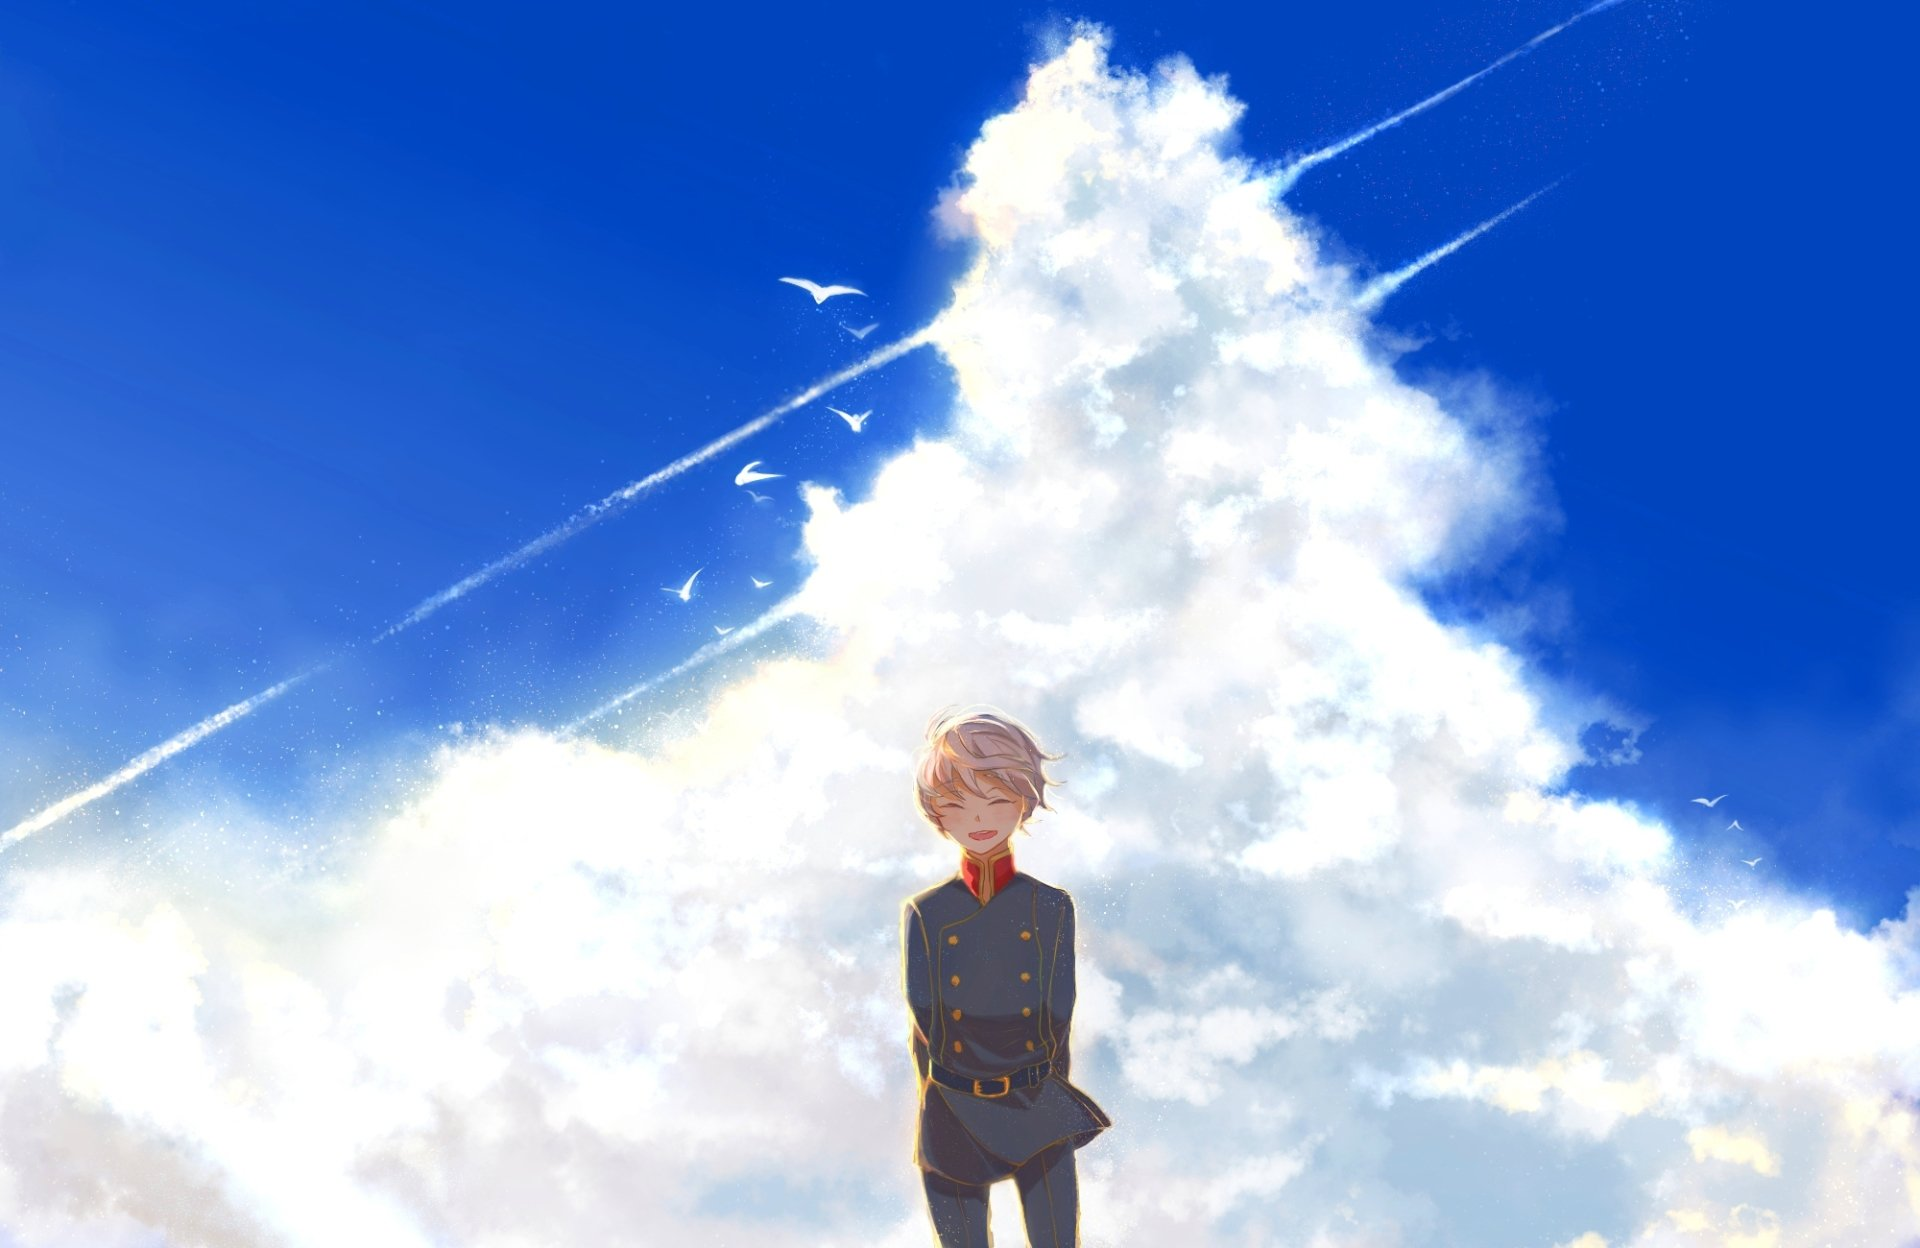 Anime - Aldnoah.Zero  Slaine Troyard Cloud Wallpaper